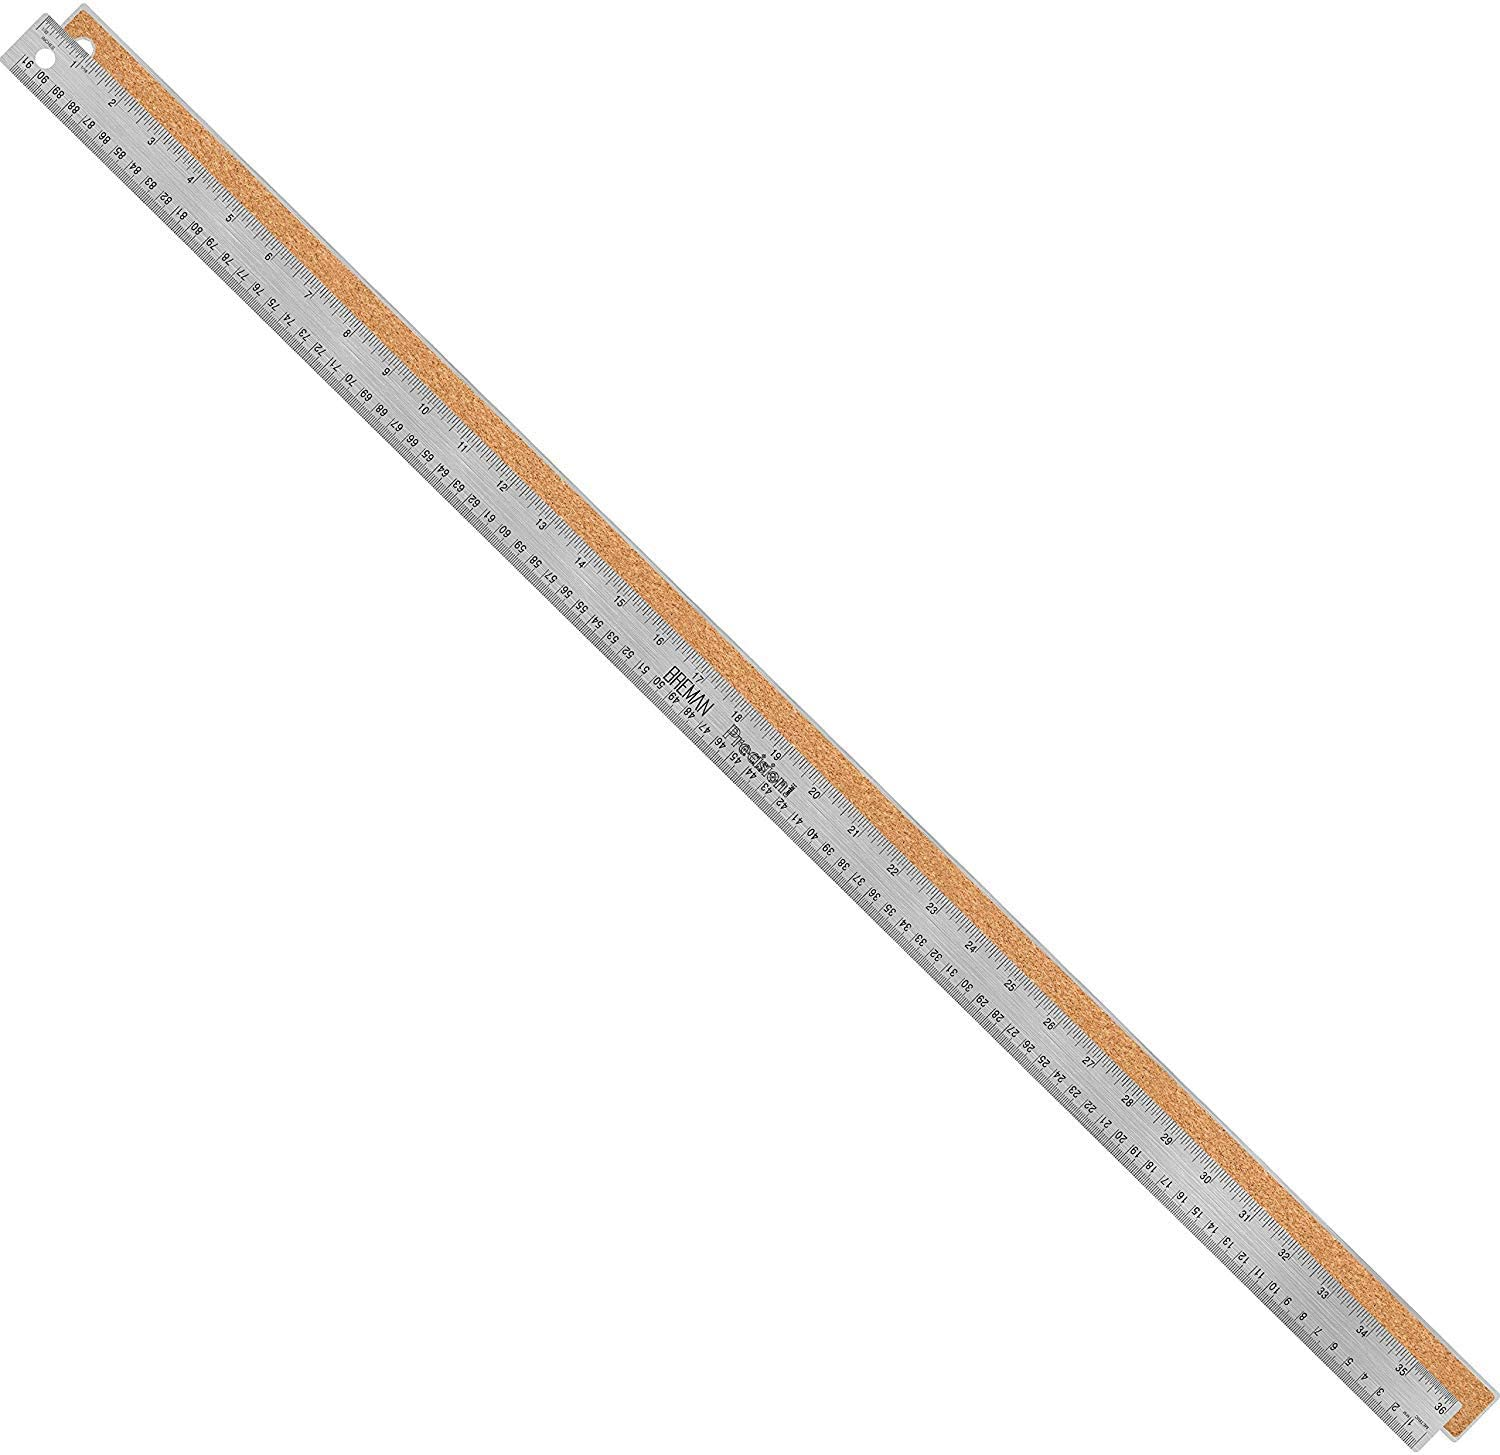 Breman Precision Stainless Steel 36 Inch Metal Rulers - Straight Edge Rulers with Inch and Metric Graduations for School Office Engineering Woodworking - Flexible with Non Slip Cork Base